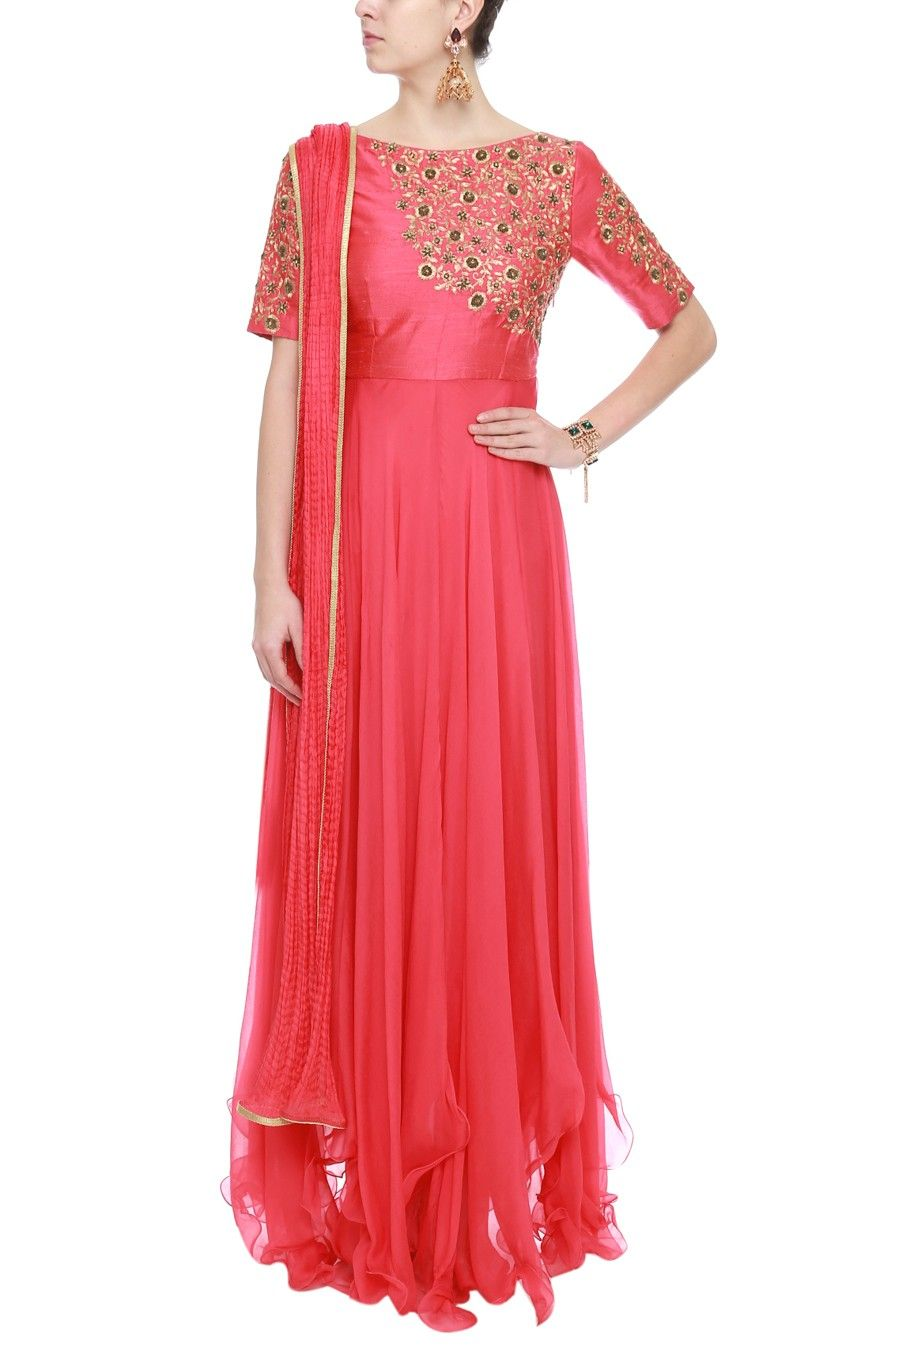 Carrot bias kali suit with heavy work by tanko shop now